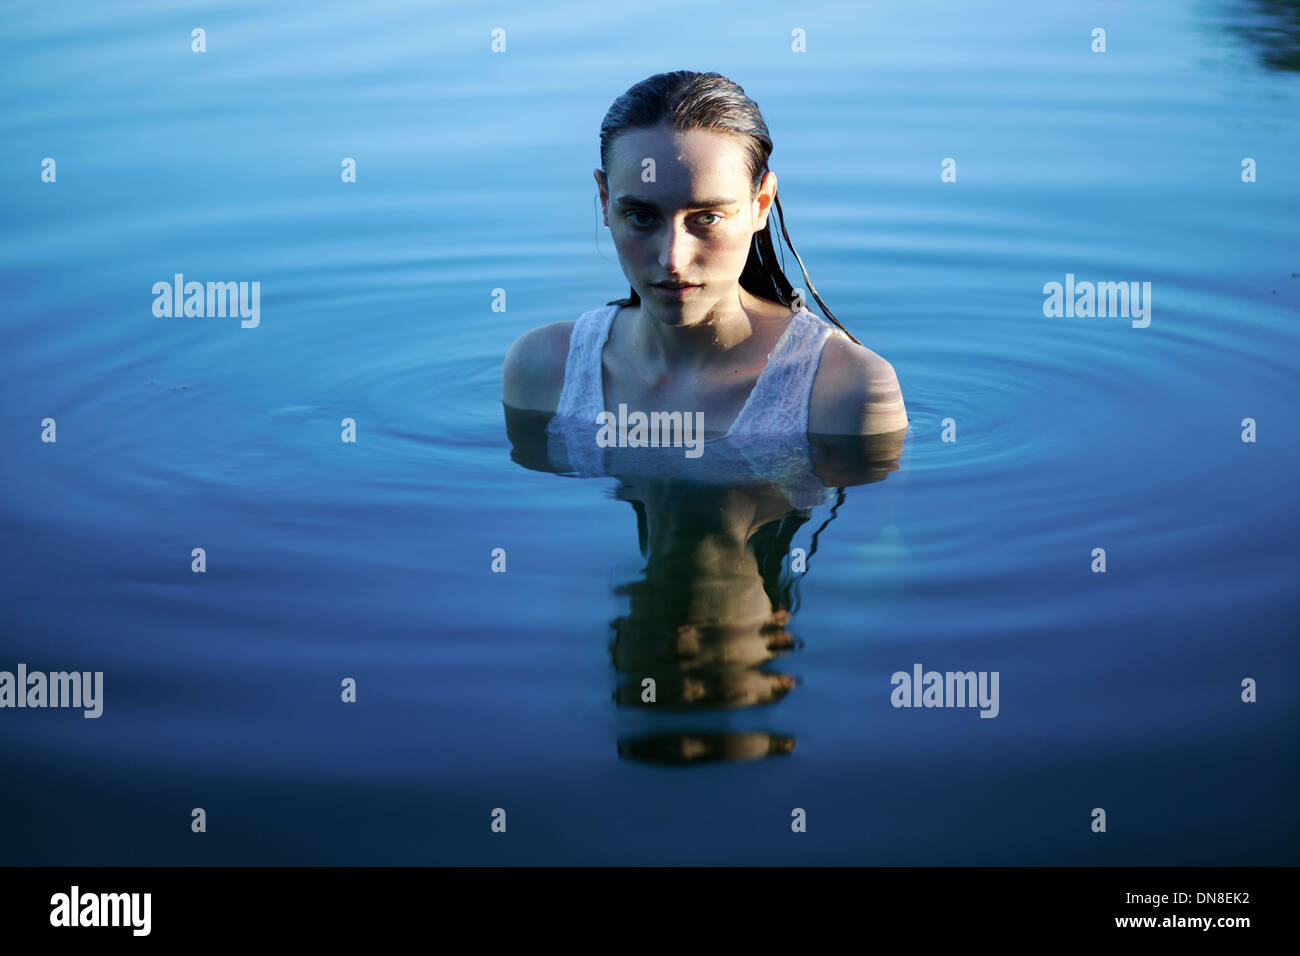 Young woman standing in water, portrait - Stock Image